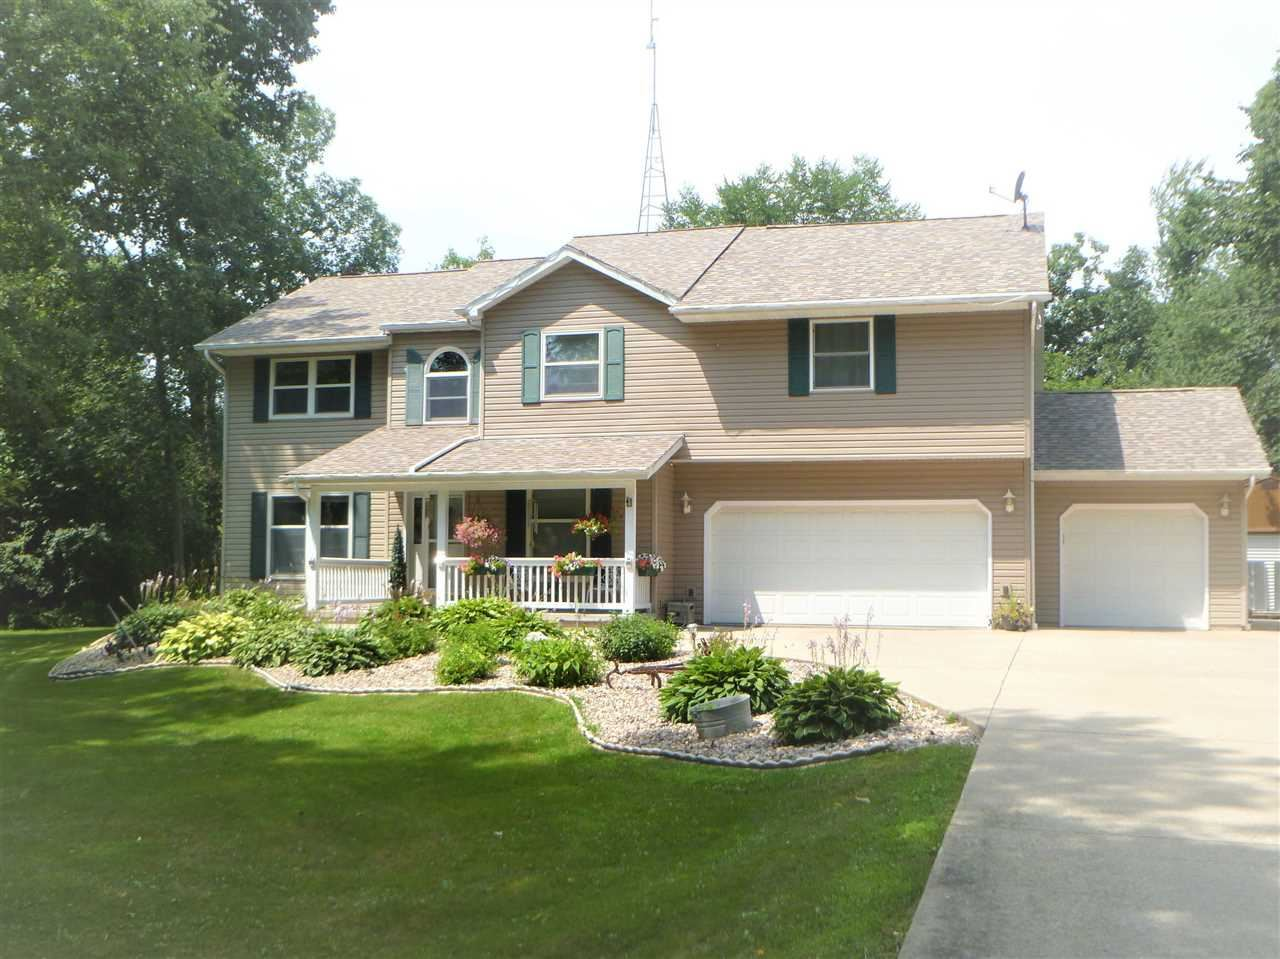 N3230 Hickory Dr, Waupun, WI 53963 - #: 1875295